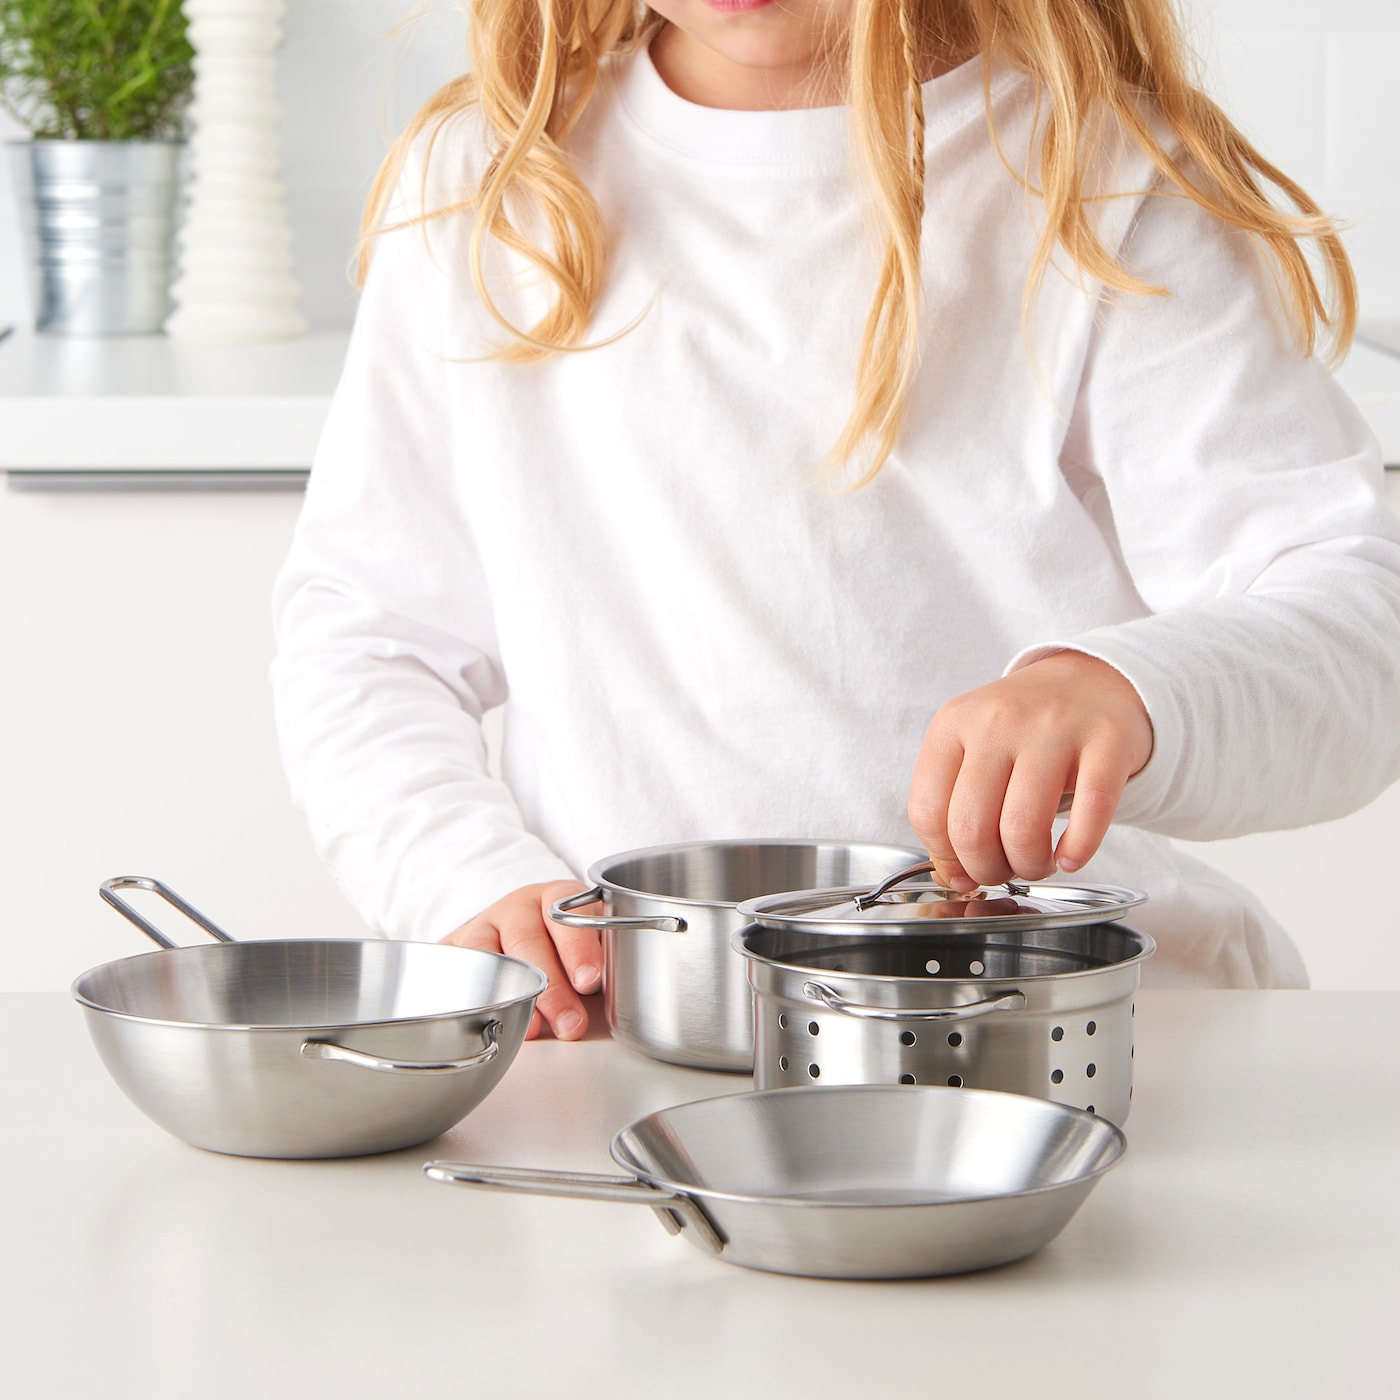 Duktig 5 Piece Toy Cookware Set Stainless Steel Color Ikea